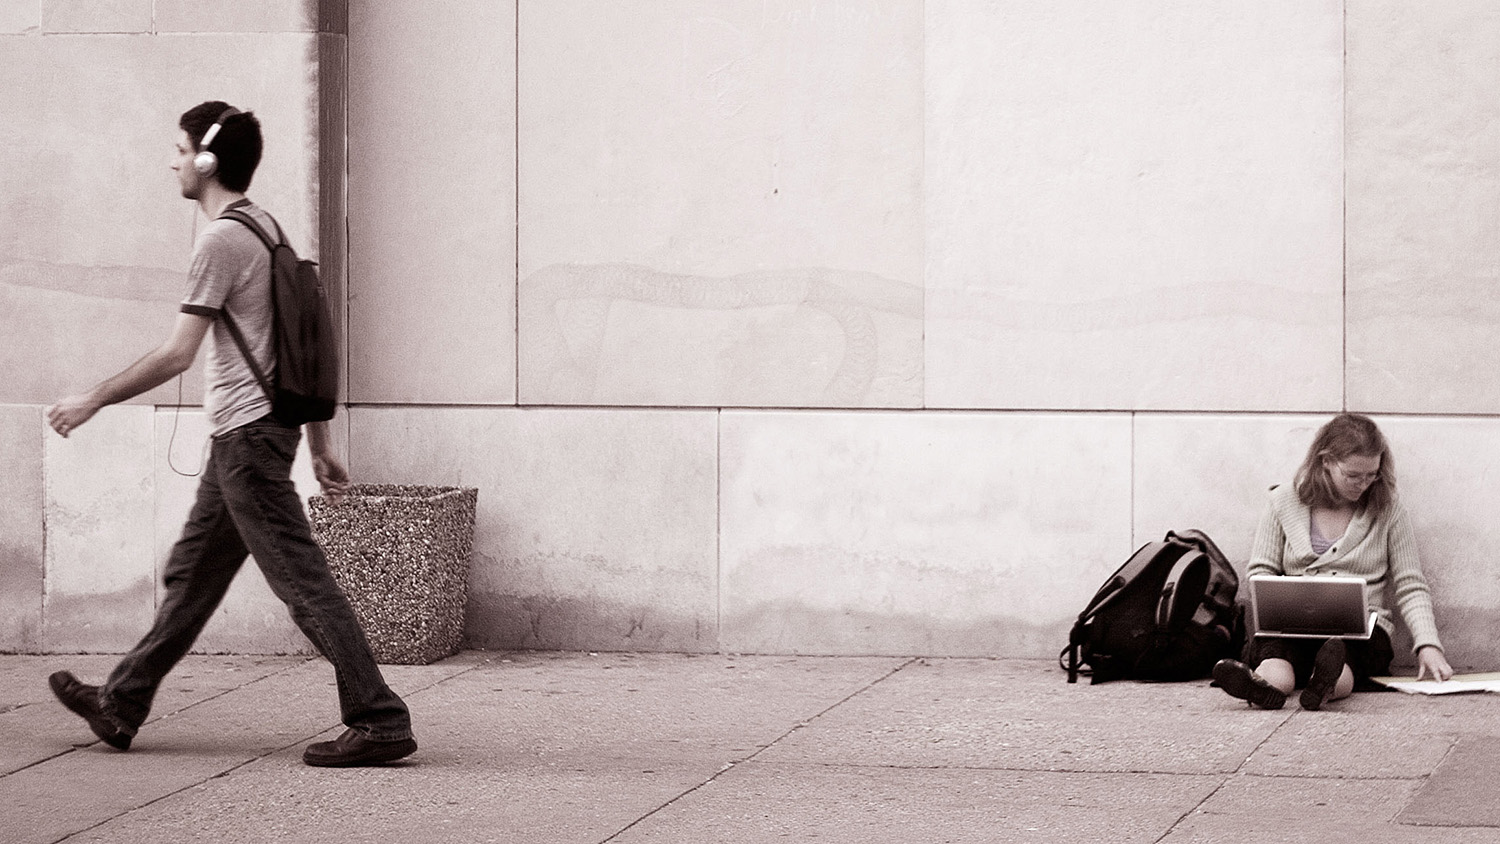 Man walks on the sidewalk with headphones. Woman sits on the ground.